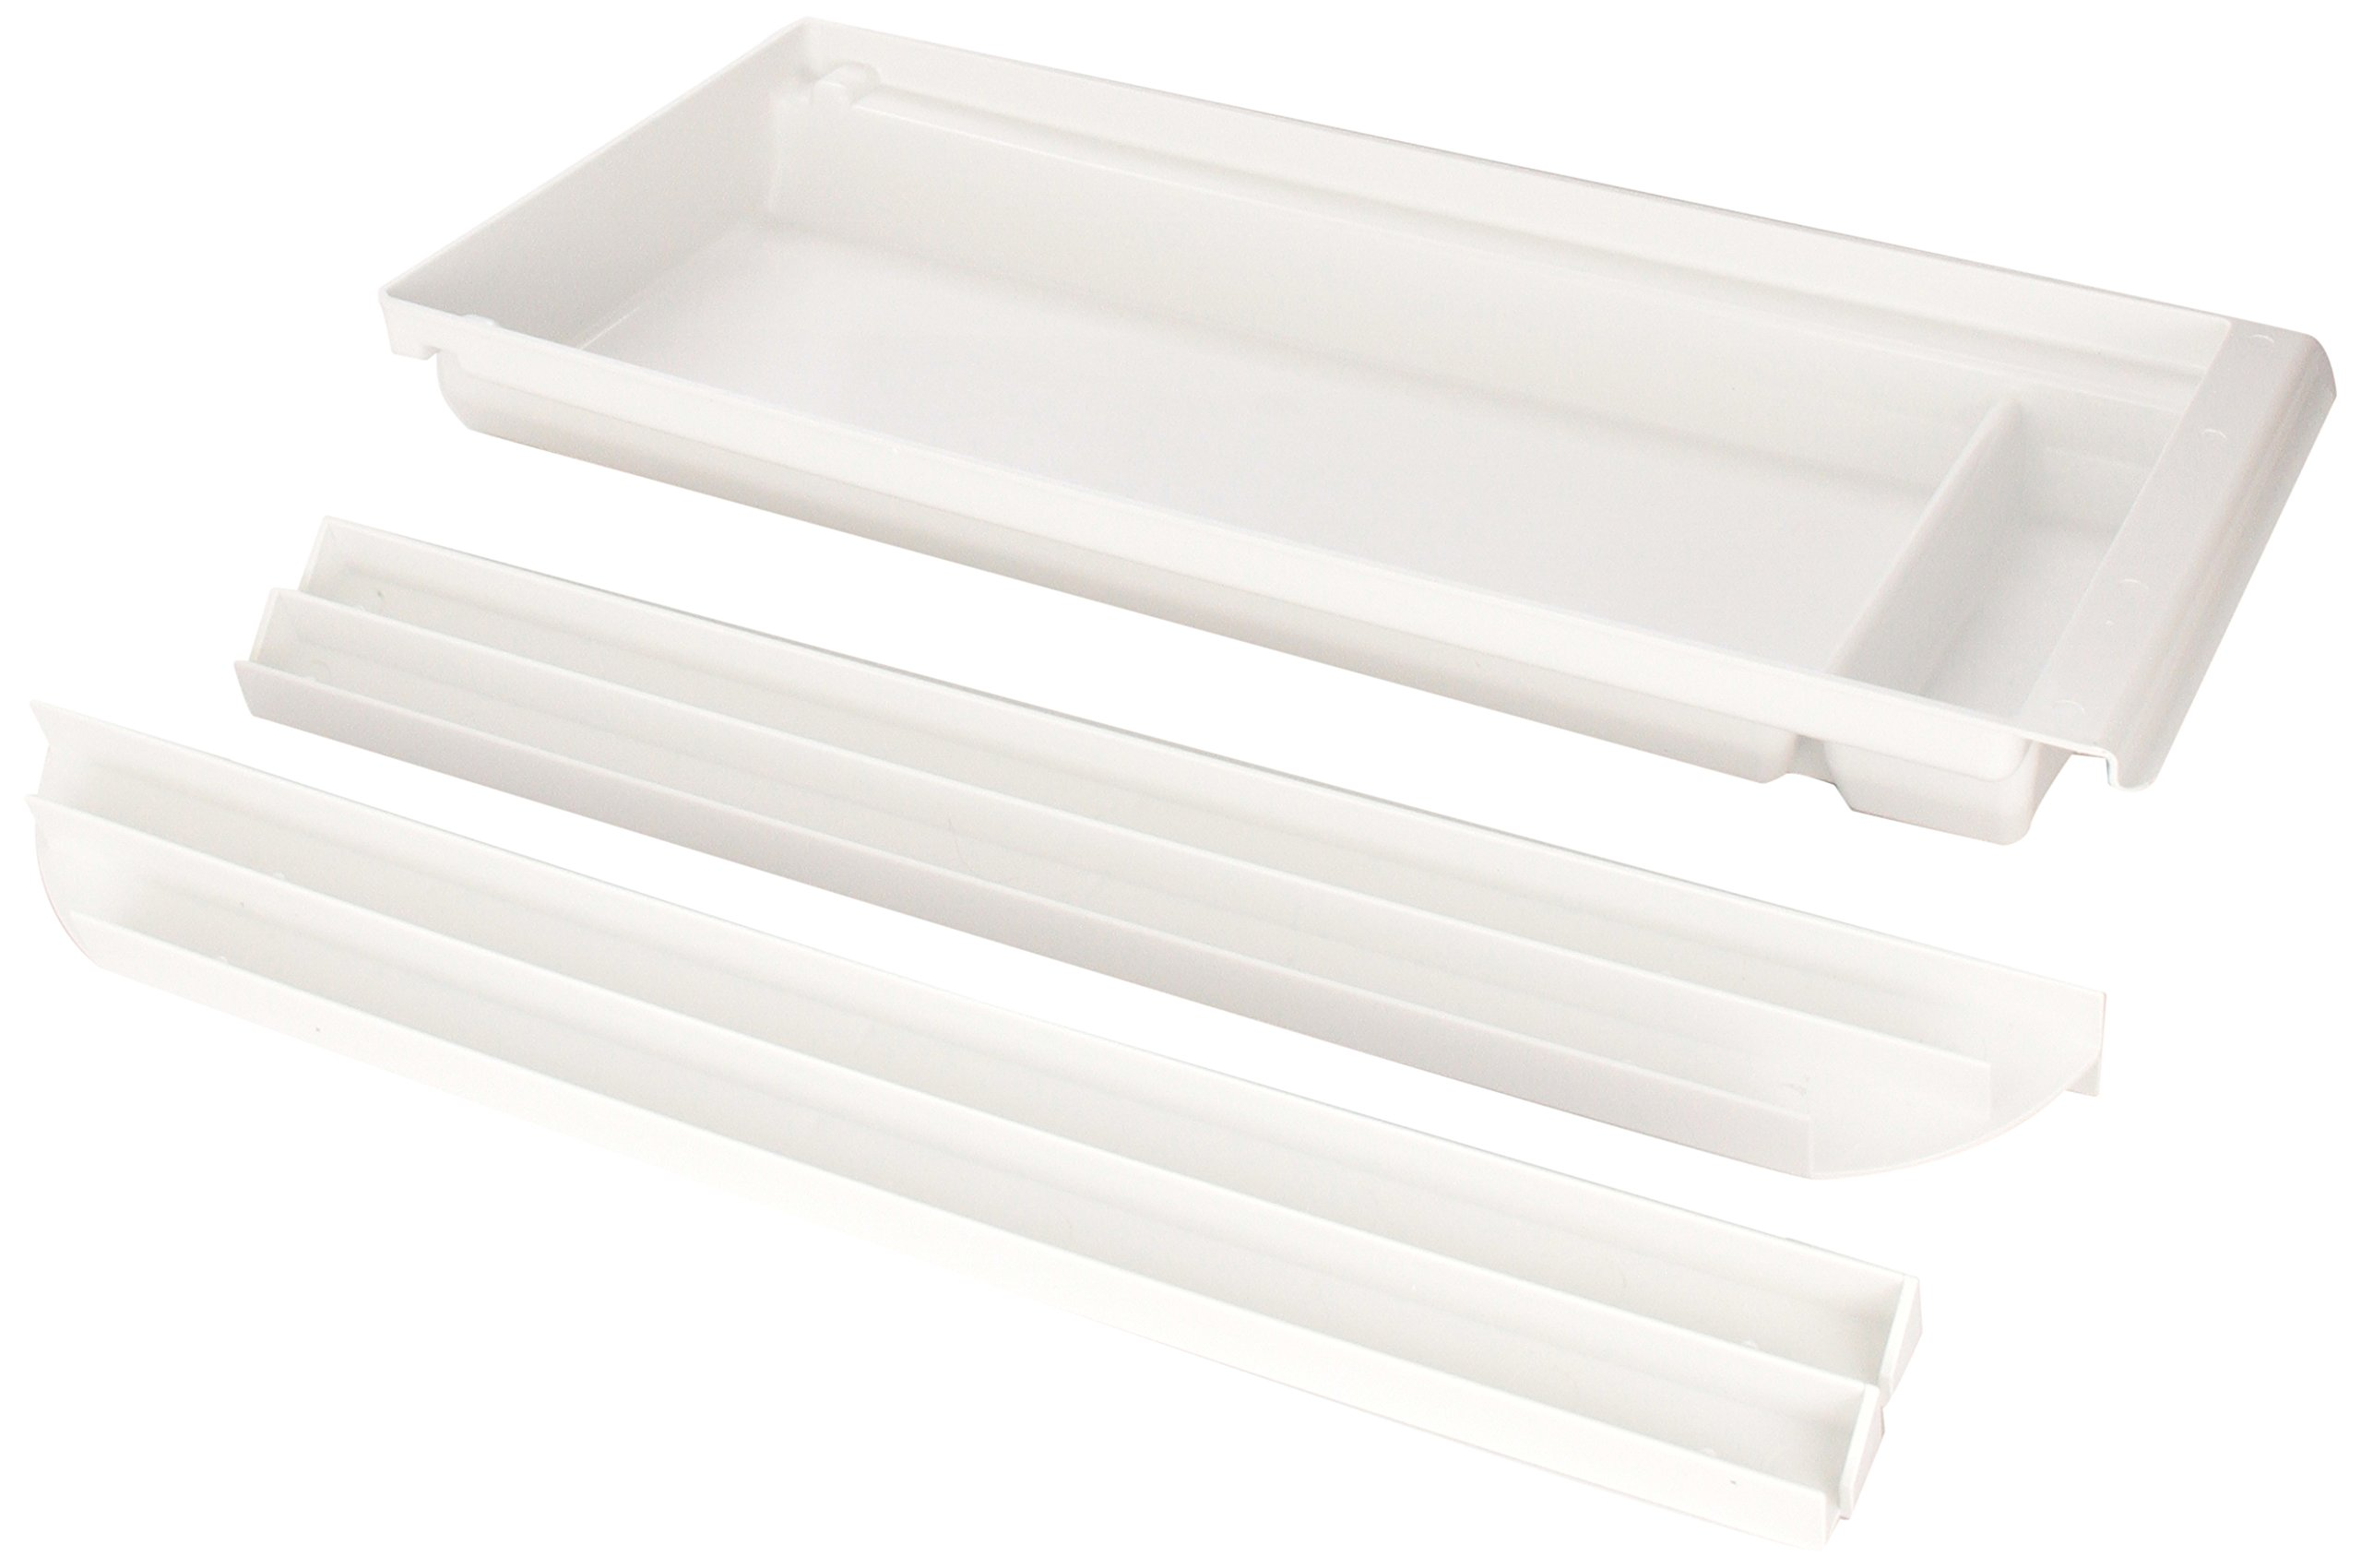 S.Solutions 814 Add-A-Drawer Kit by S.Solutions